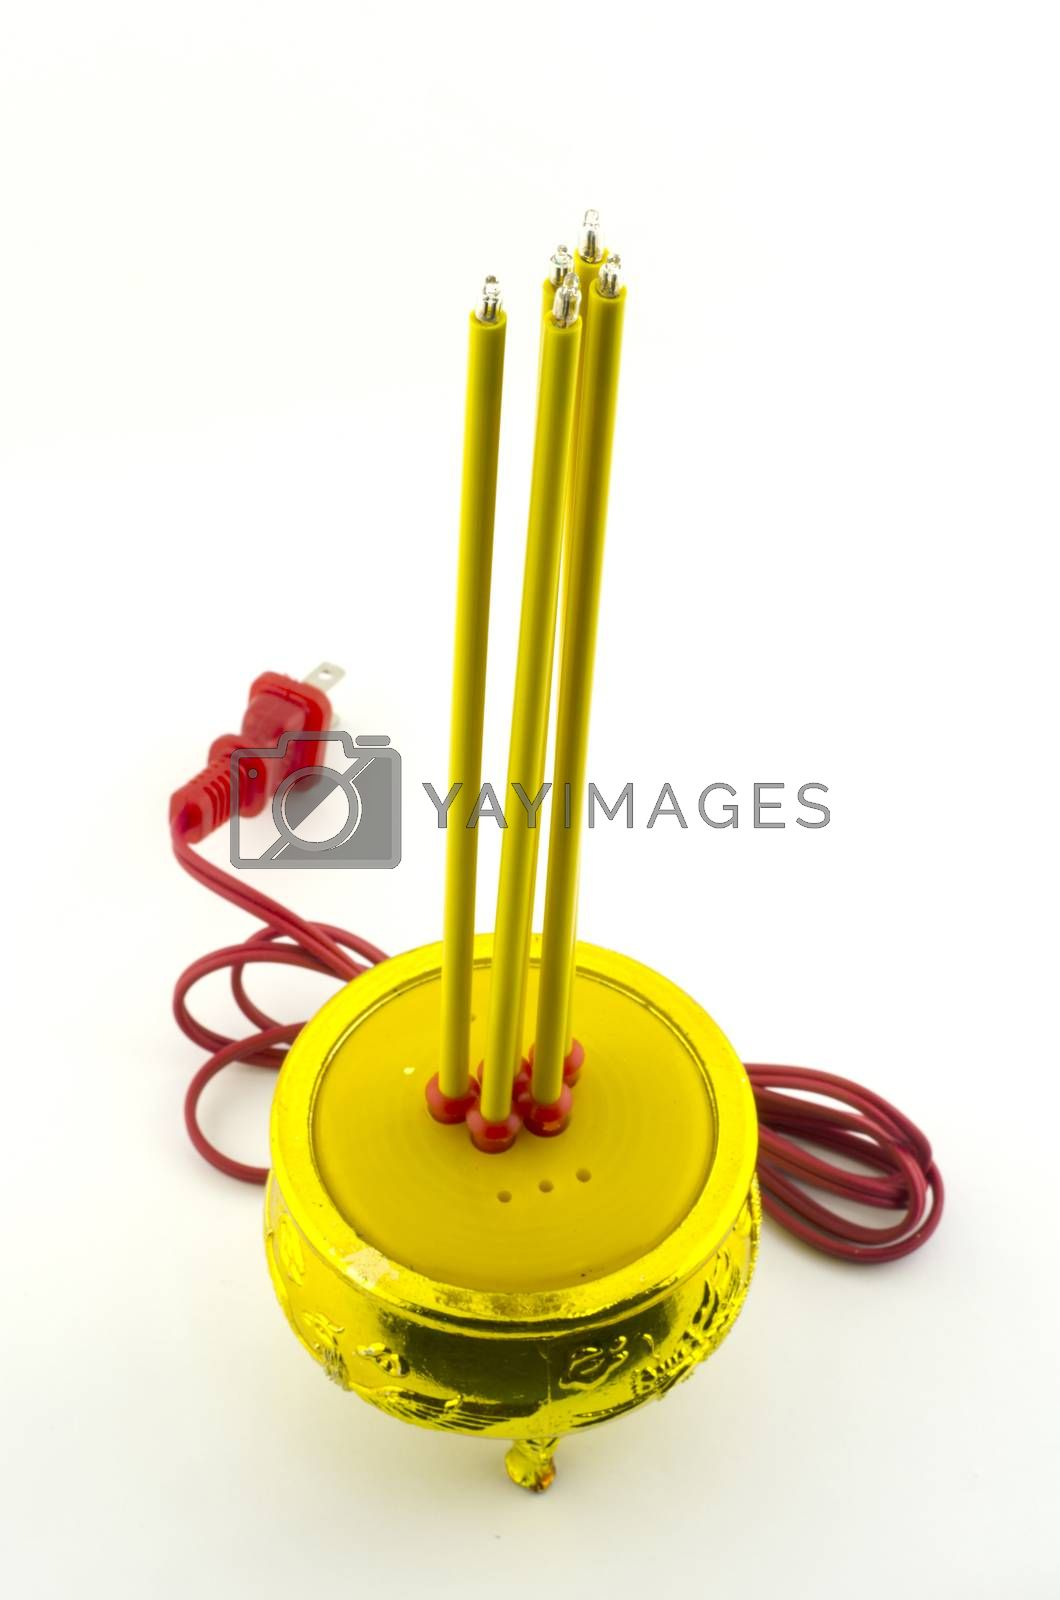 Electricity Incense burner isolated with white background